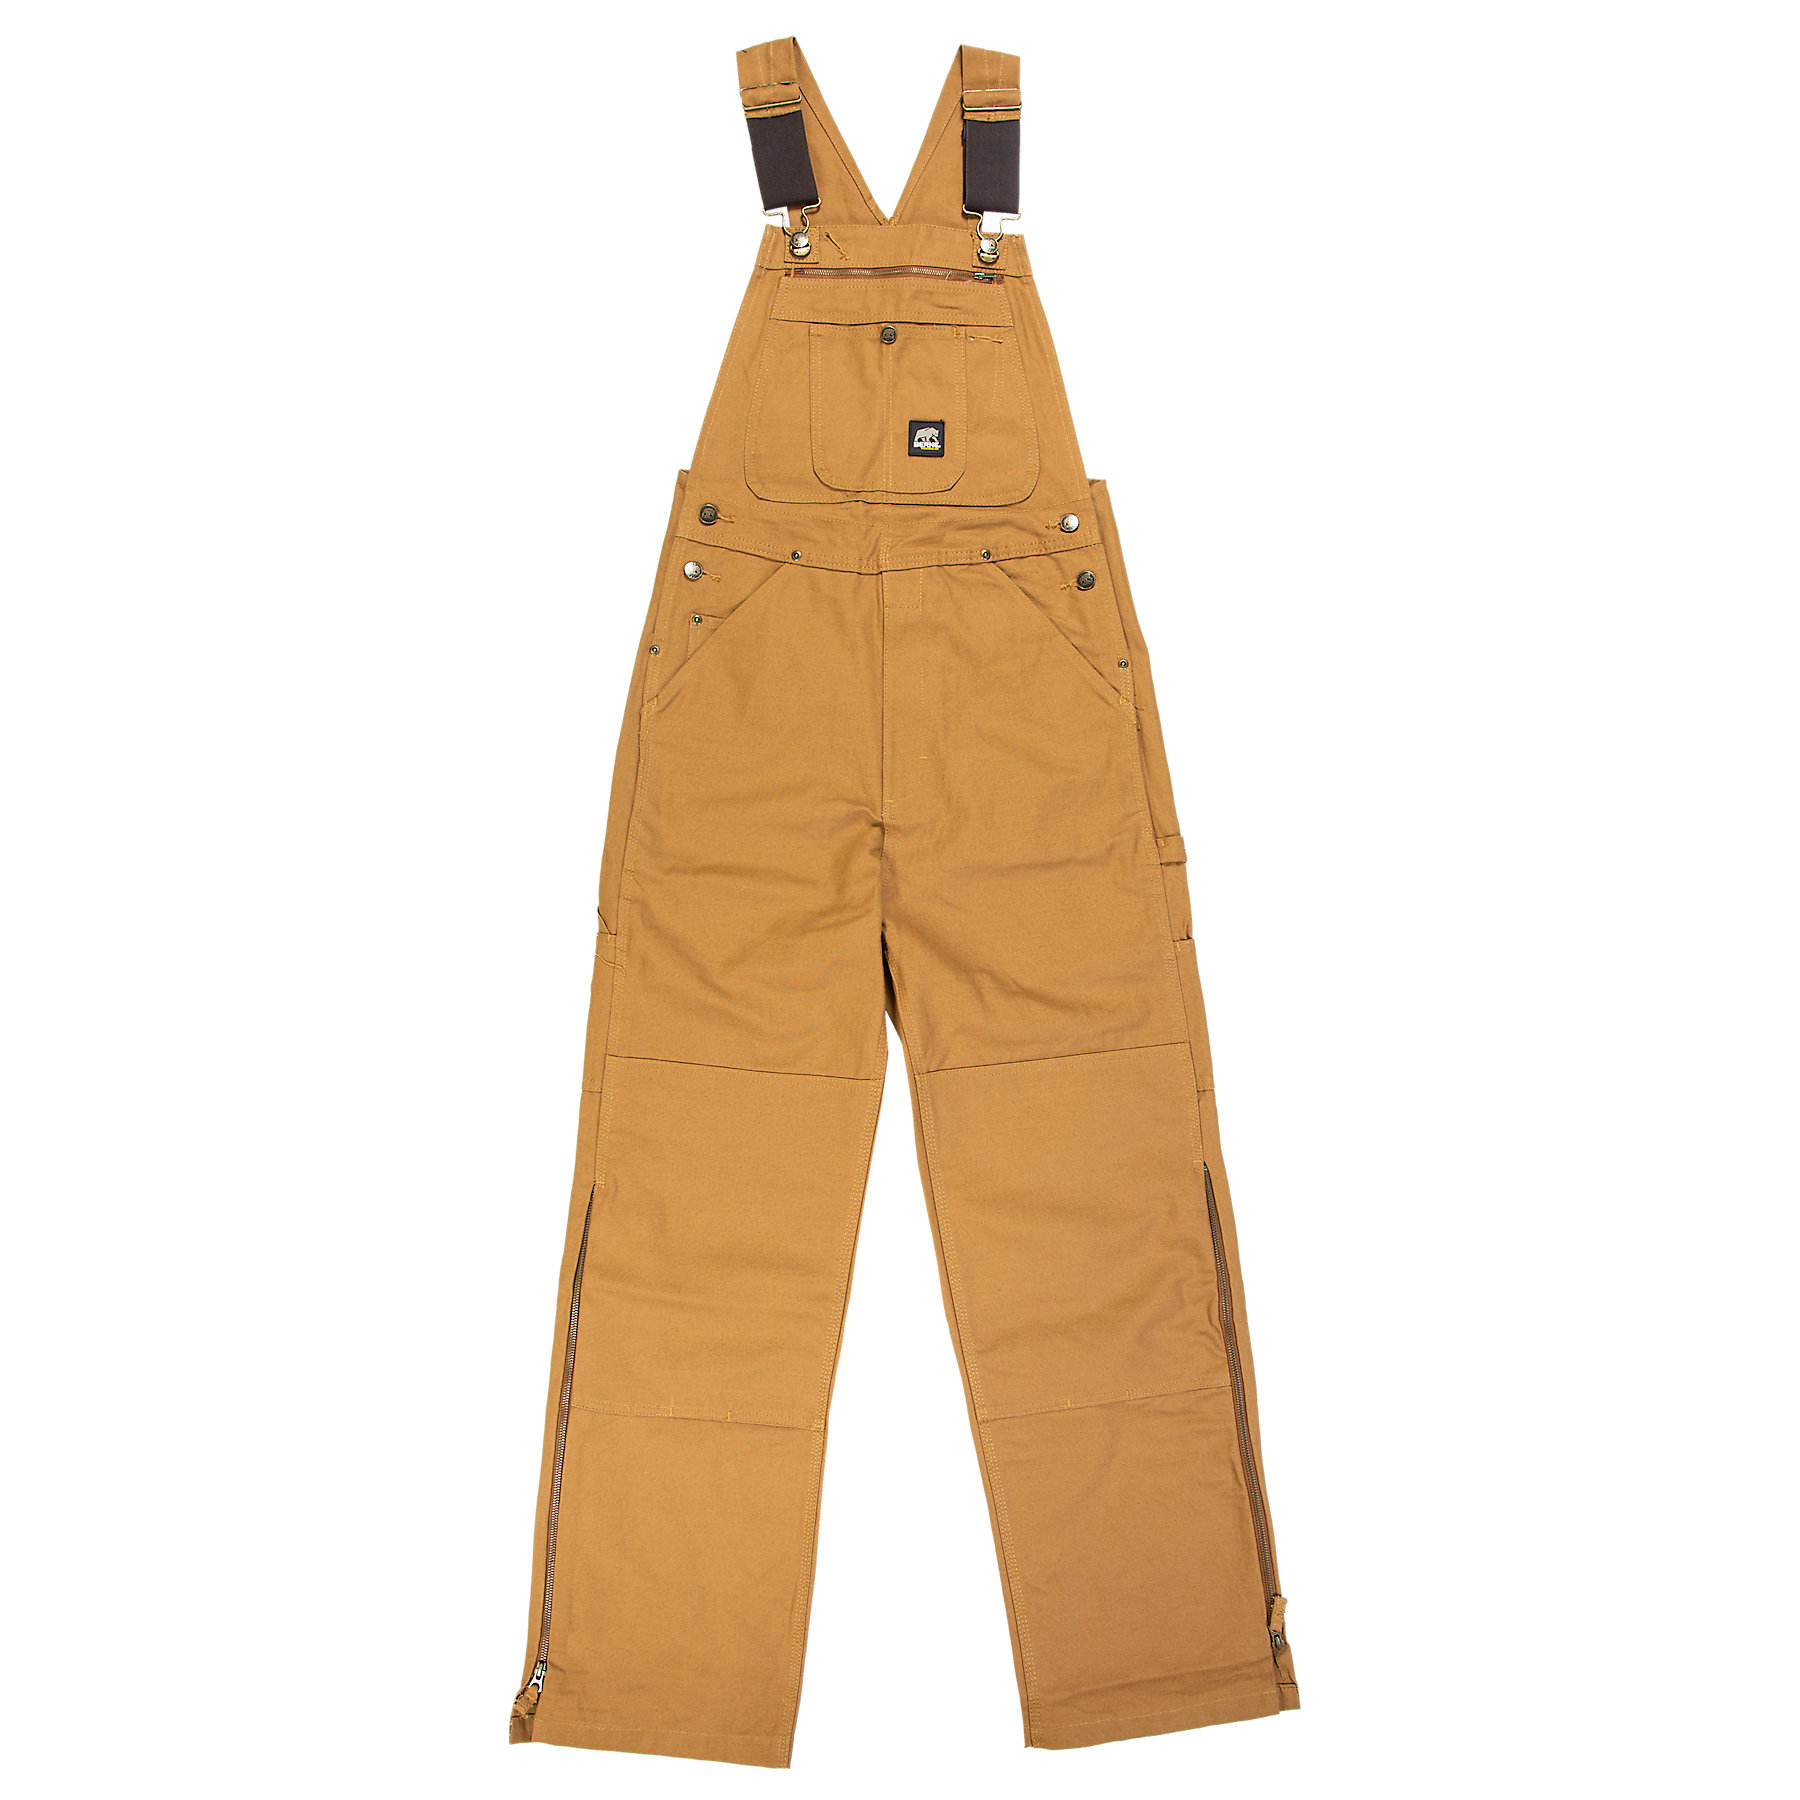 Berne Mens Unlined Washed Duck Bib Overall